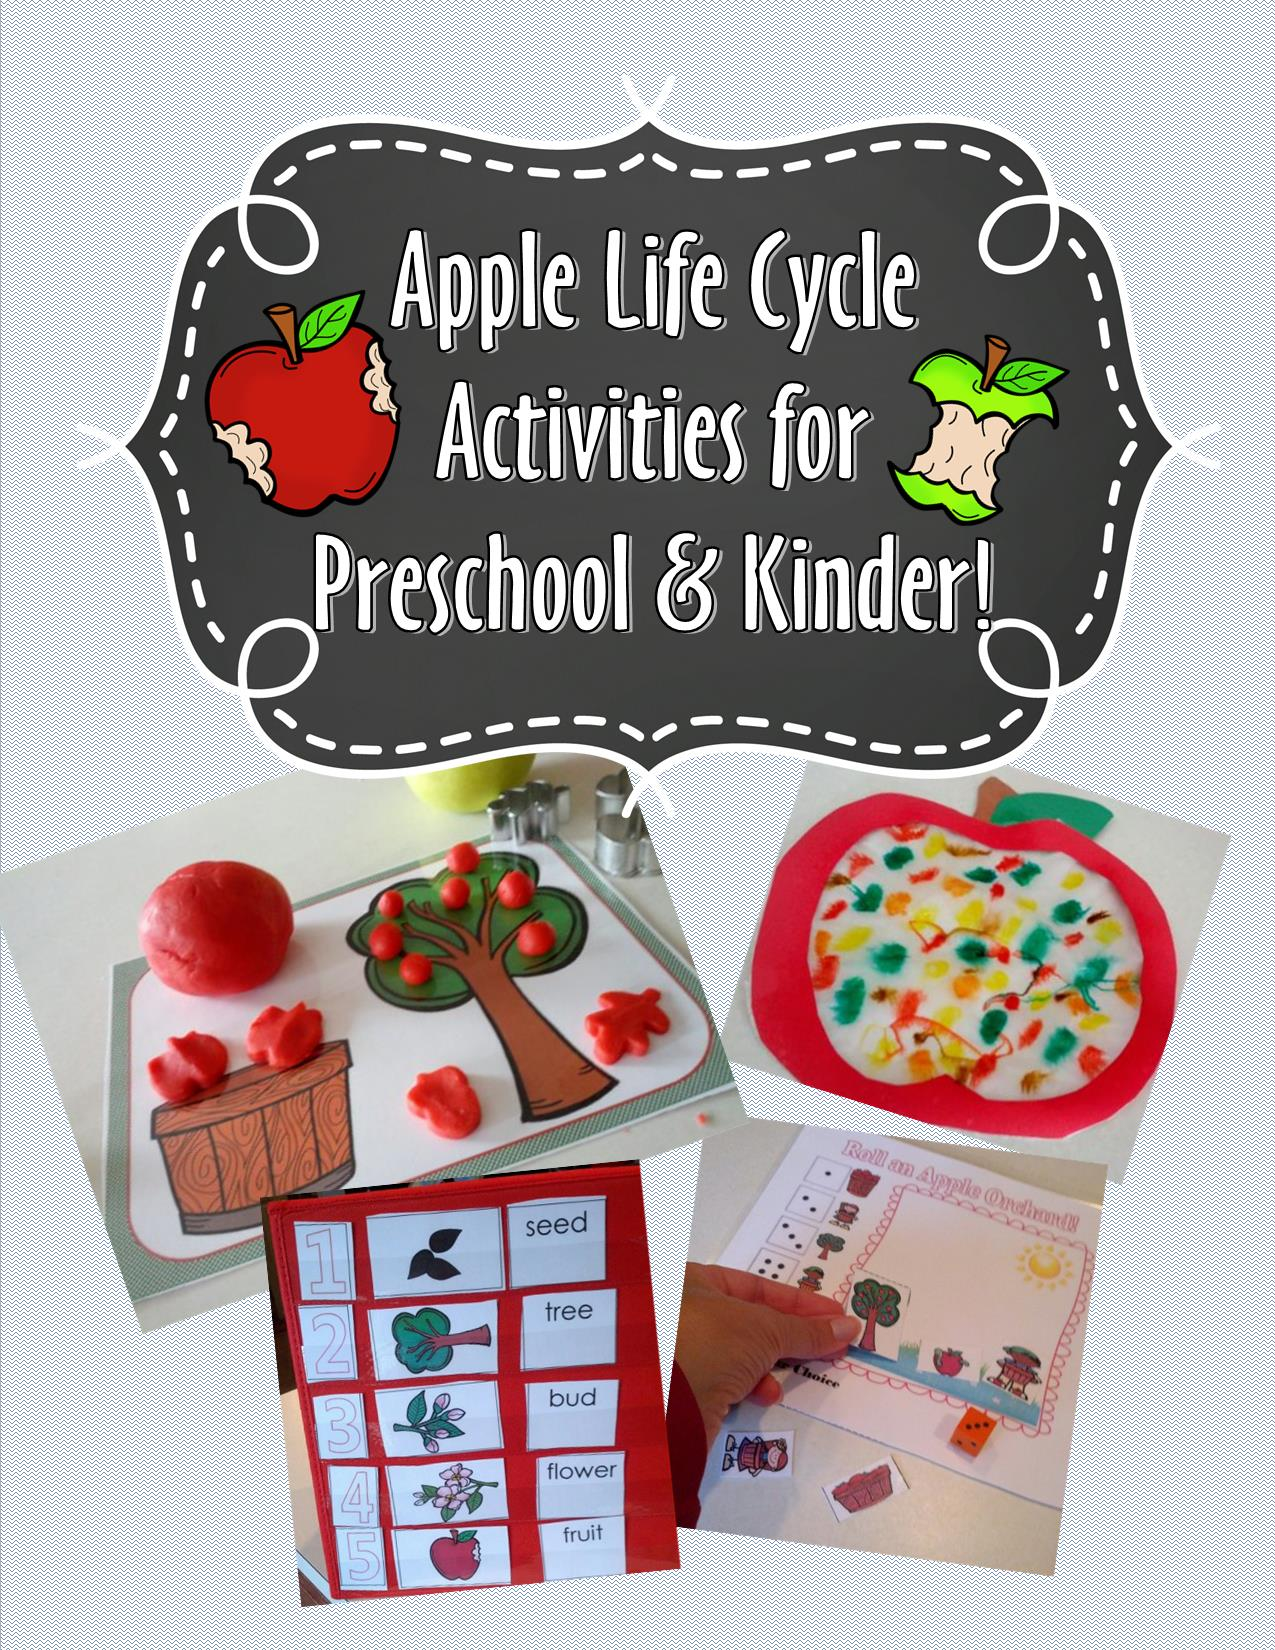 image regarding Apple Life Cycle Printable named Fresh new Apple Existence Cycle Packet and No cost Printable Training